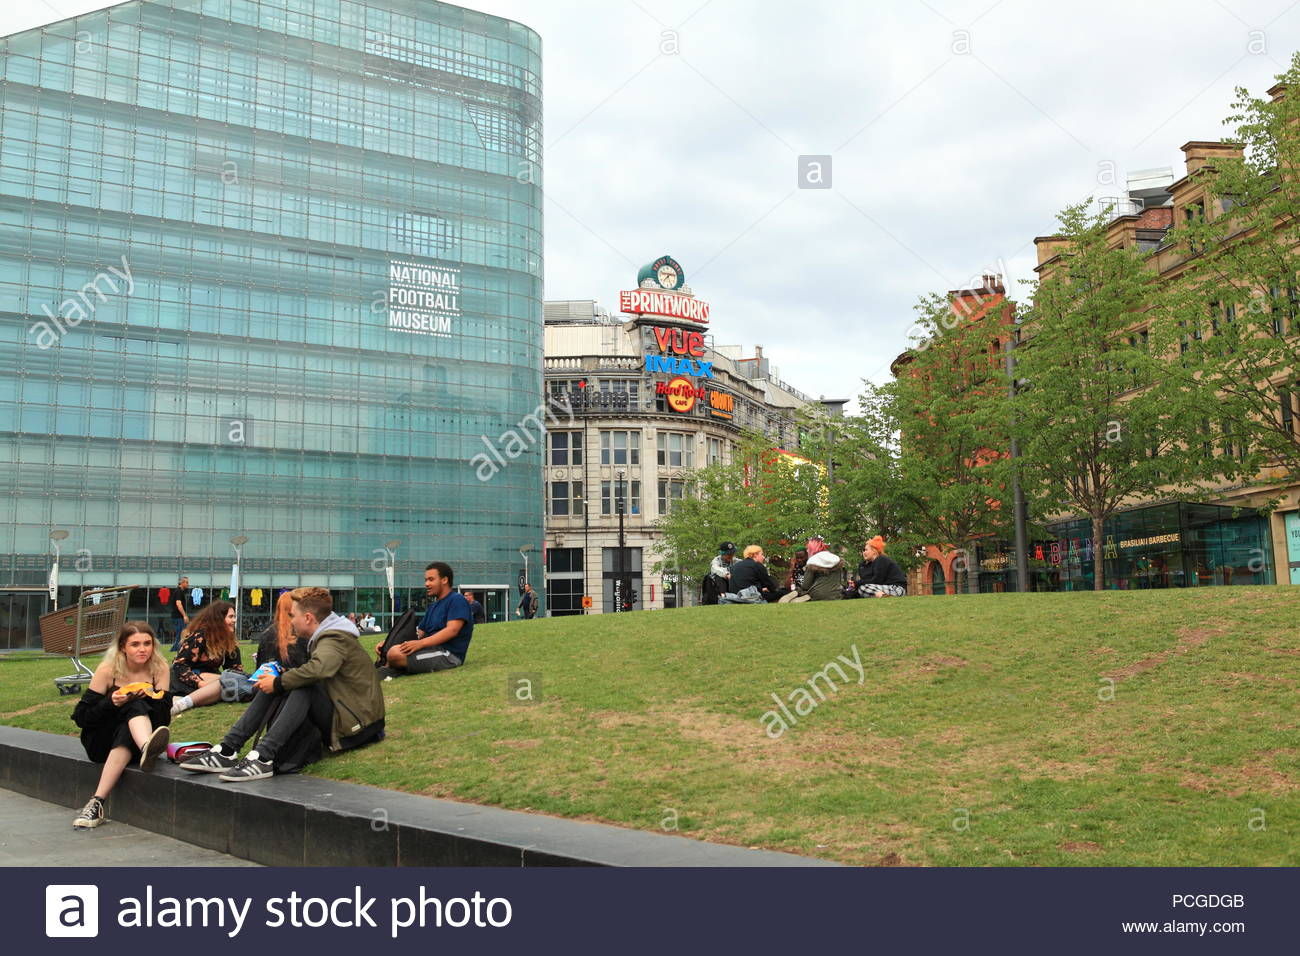 City life around the Printworks at Exchange Square Manchester UK. Summer August 2018 Evening Stock Photo